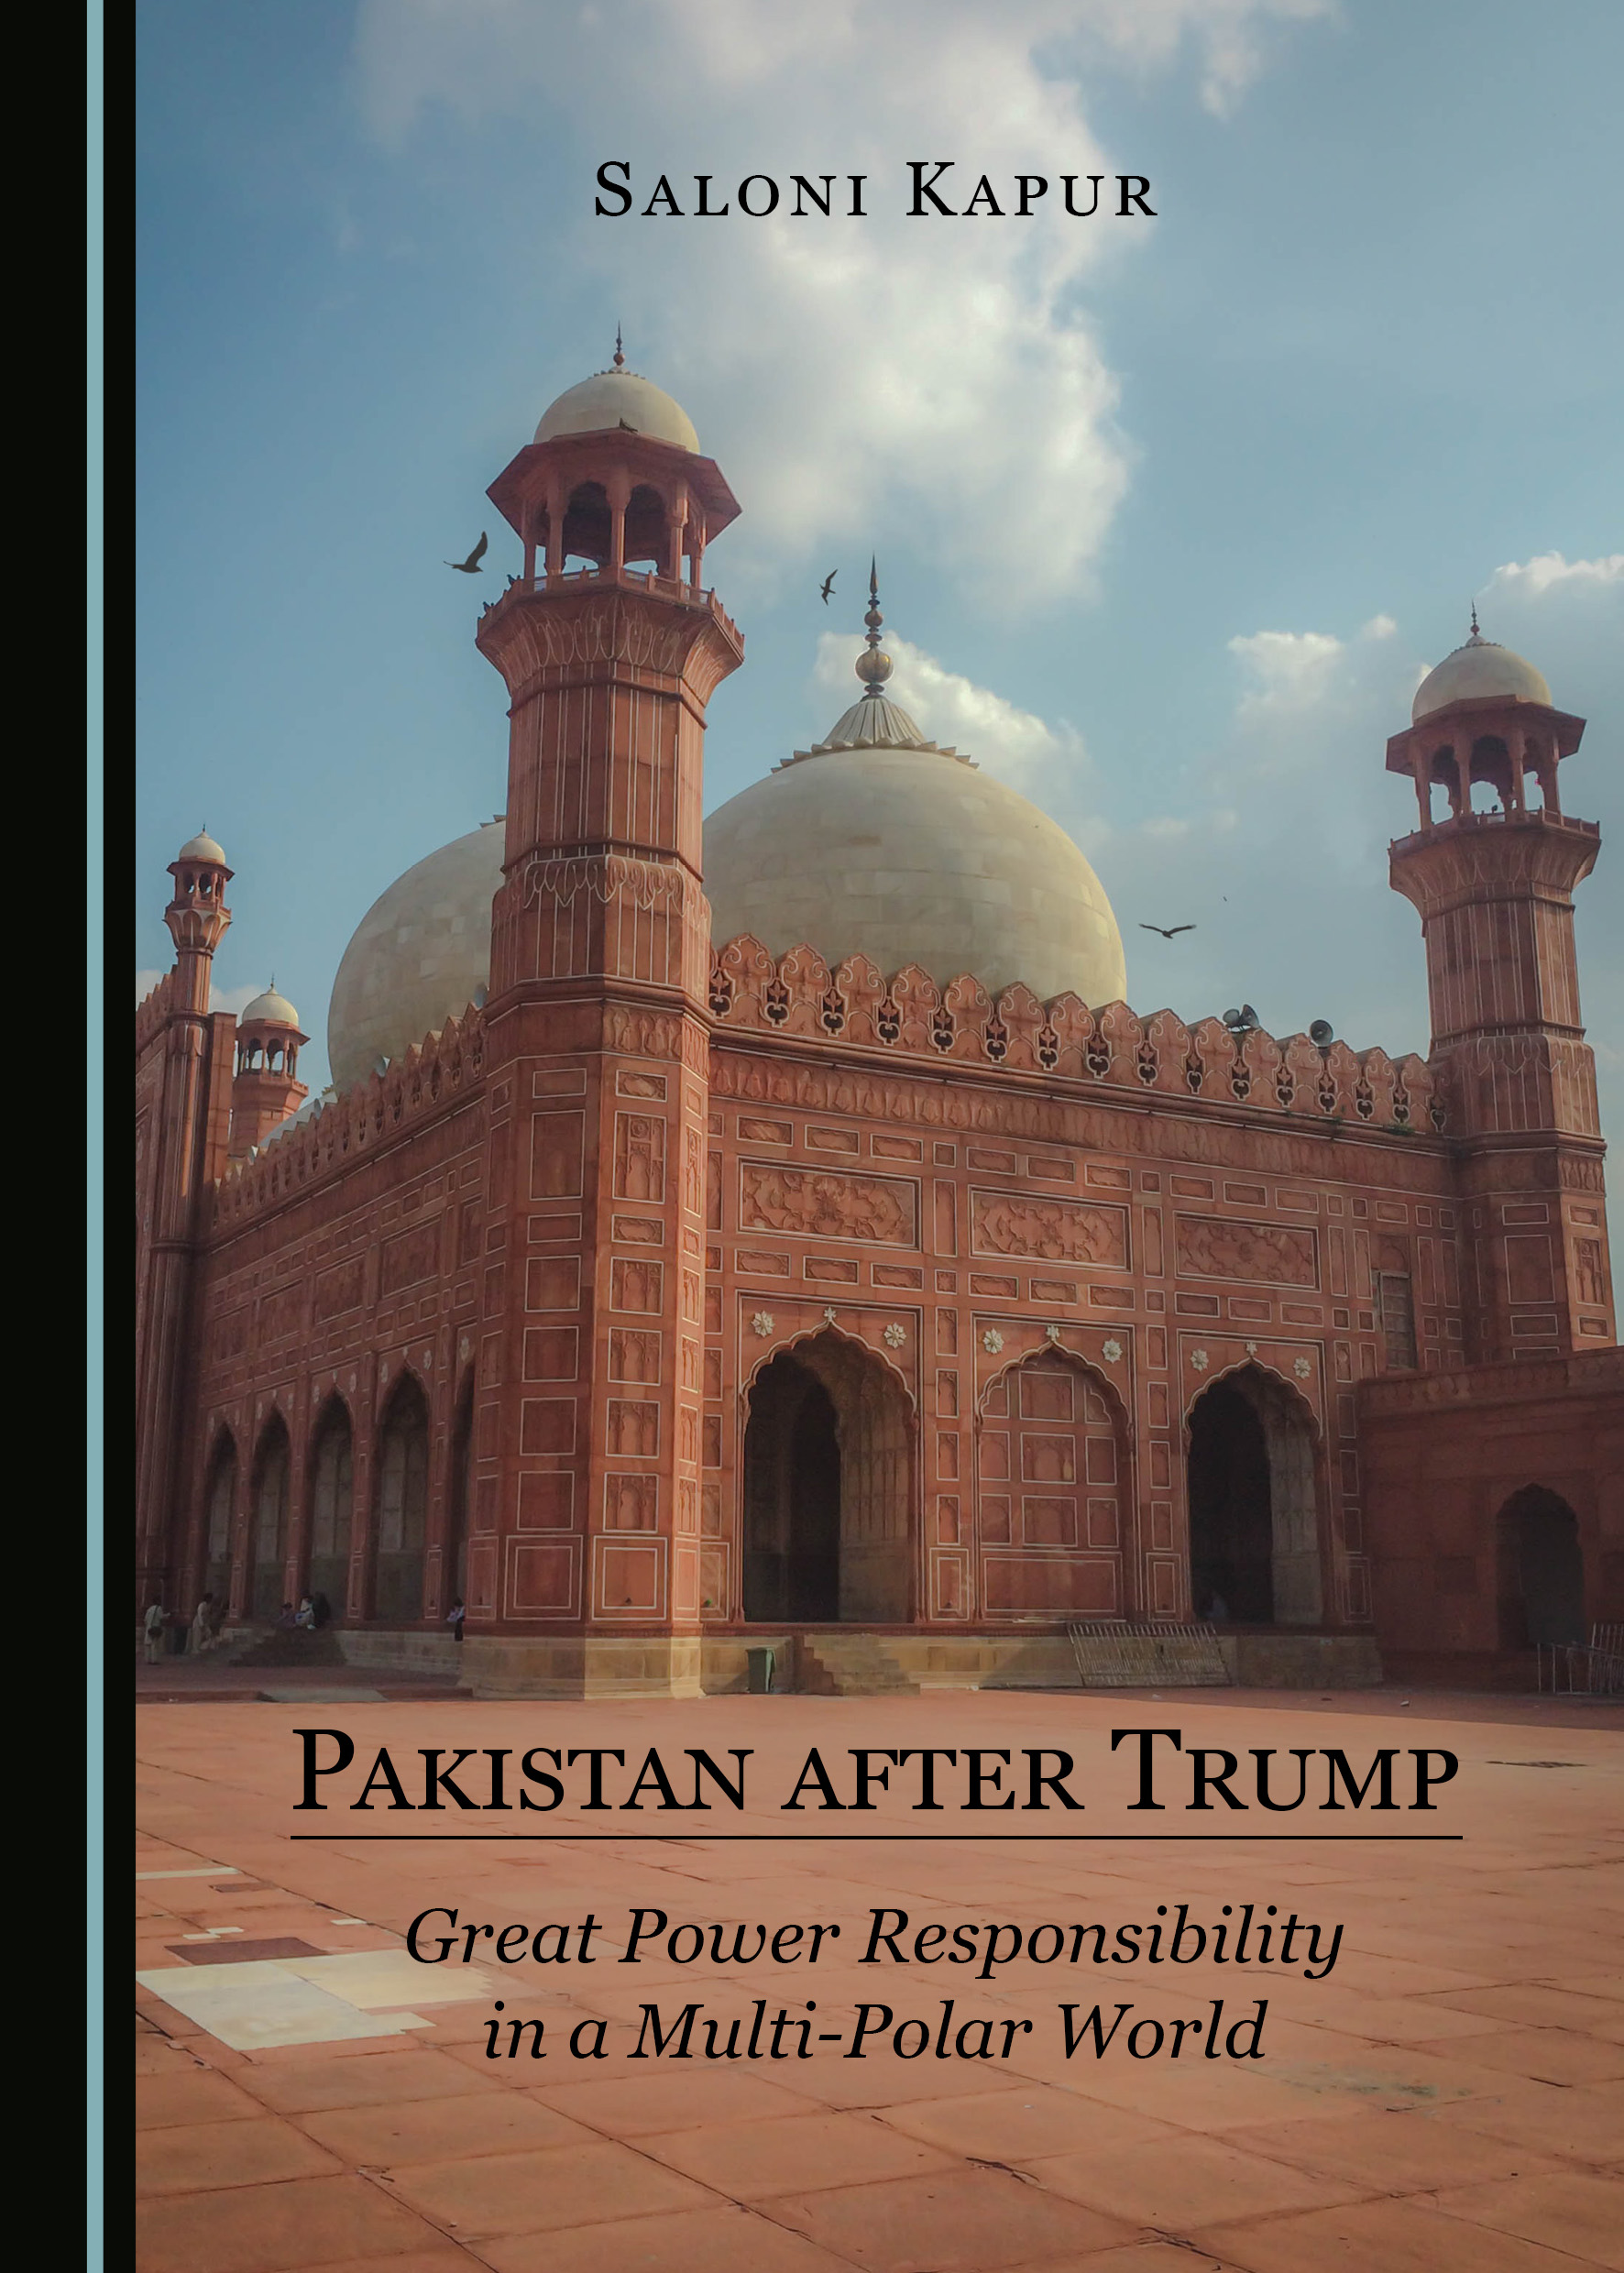 Pakistan after Trump: Great Power Responsibility in a Multi-Polar World